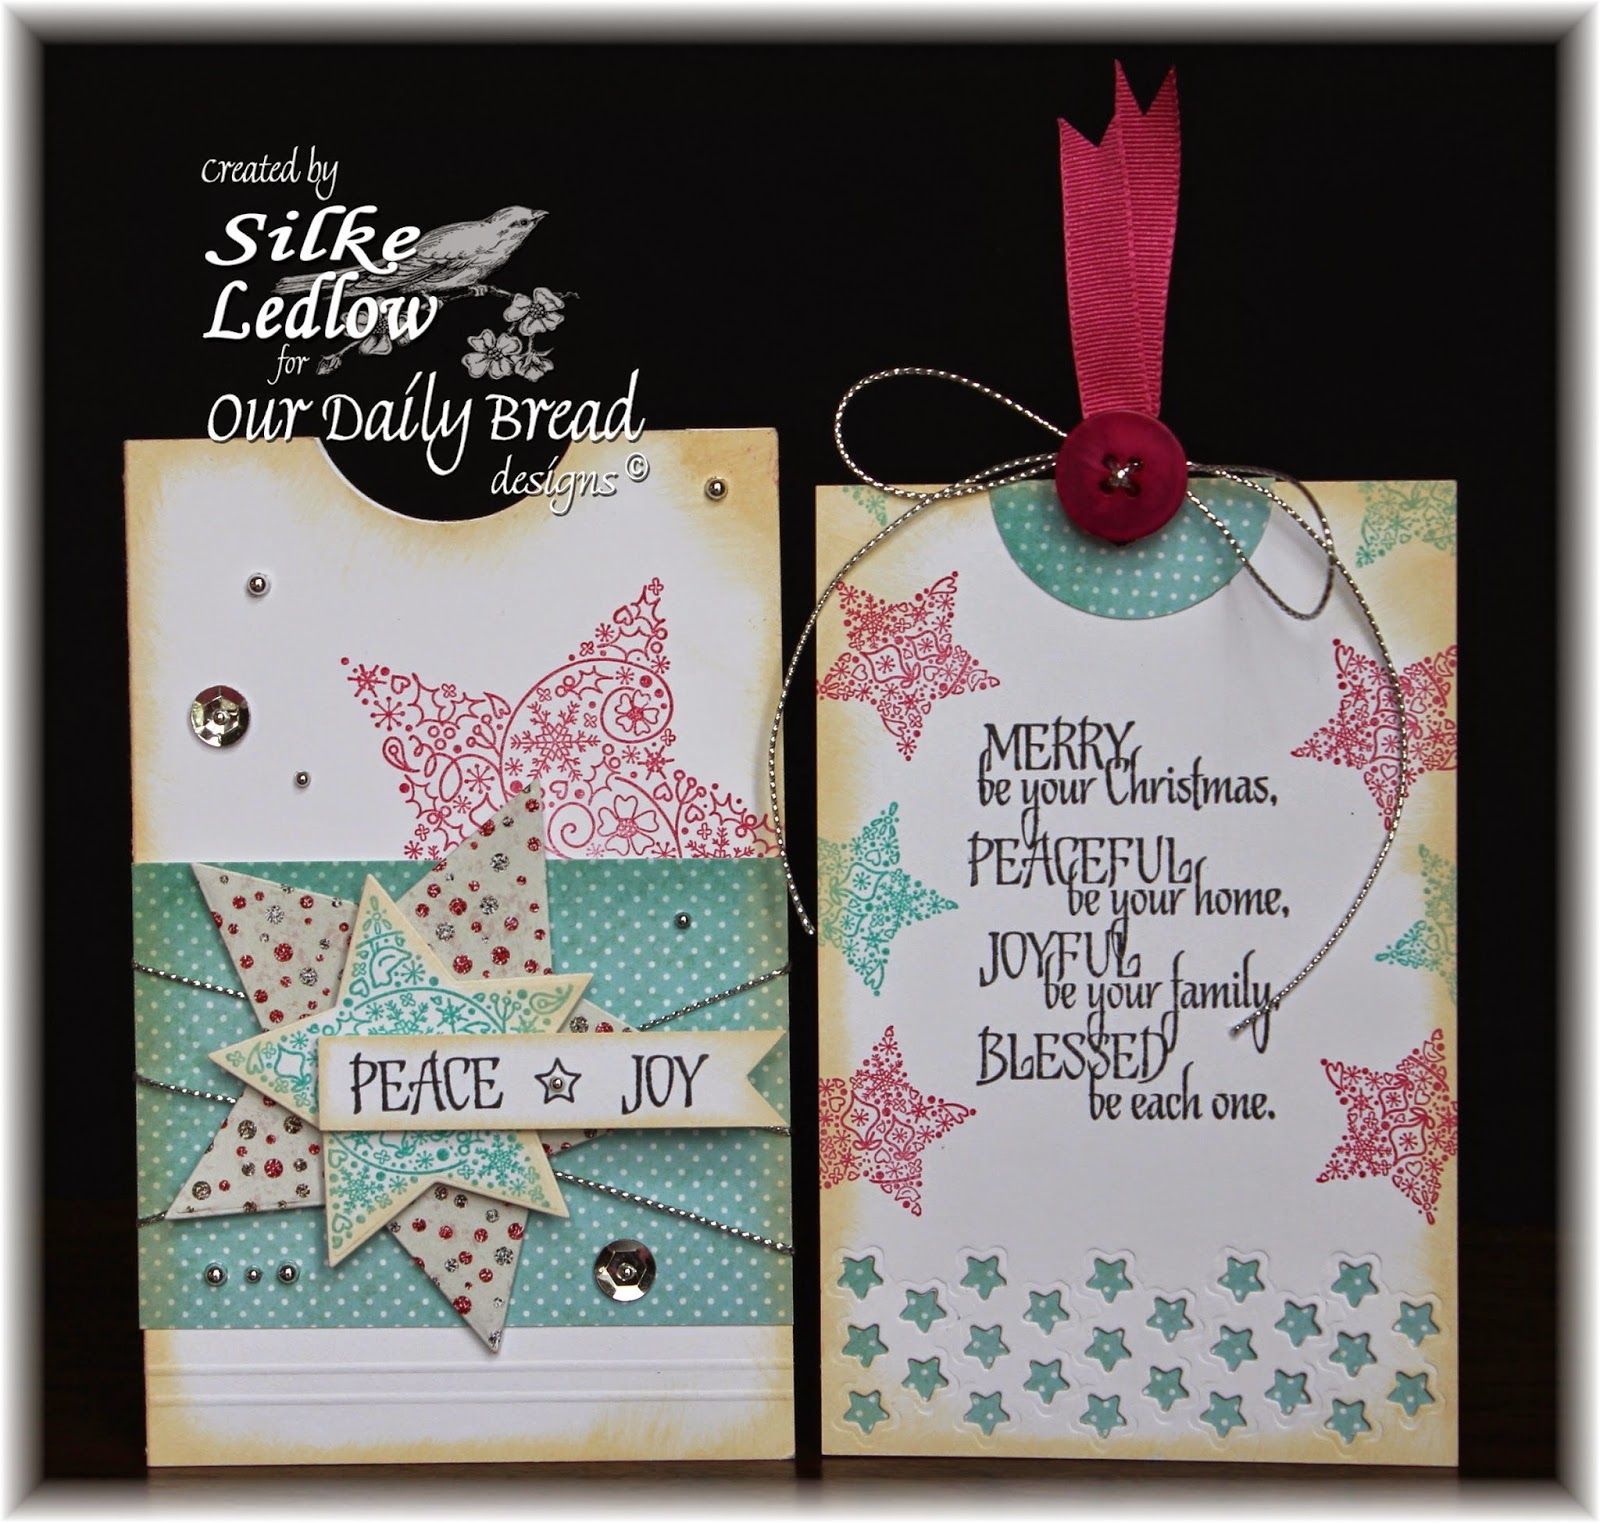 Stamps - Our Daily Bread Designs His Birth, ODBD Christmas Paper Collection 2014, ODBD Custom Sparkling Stars Dies